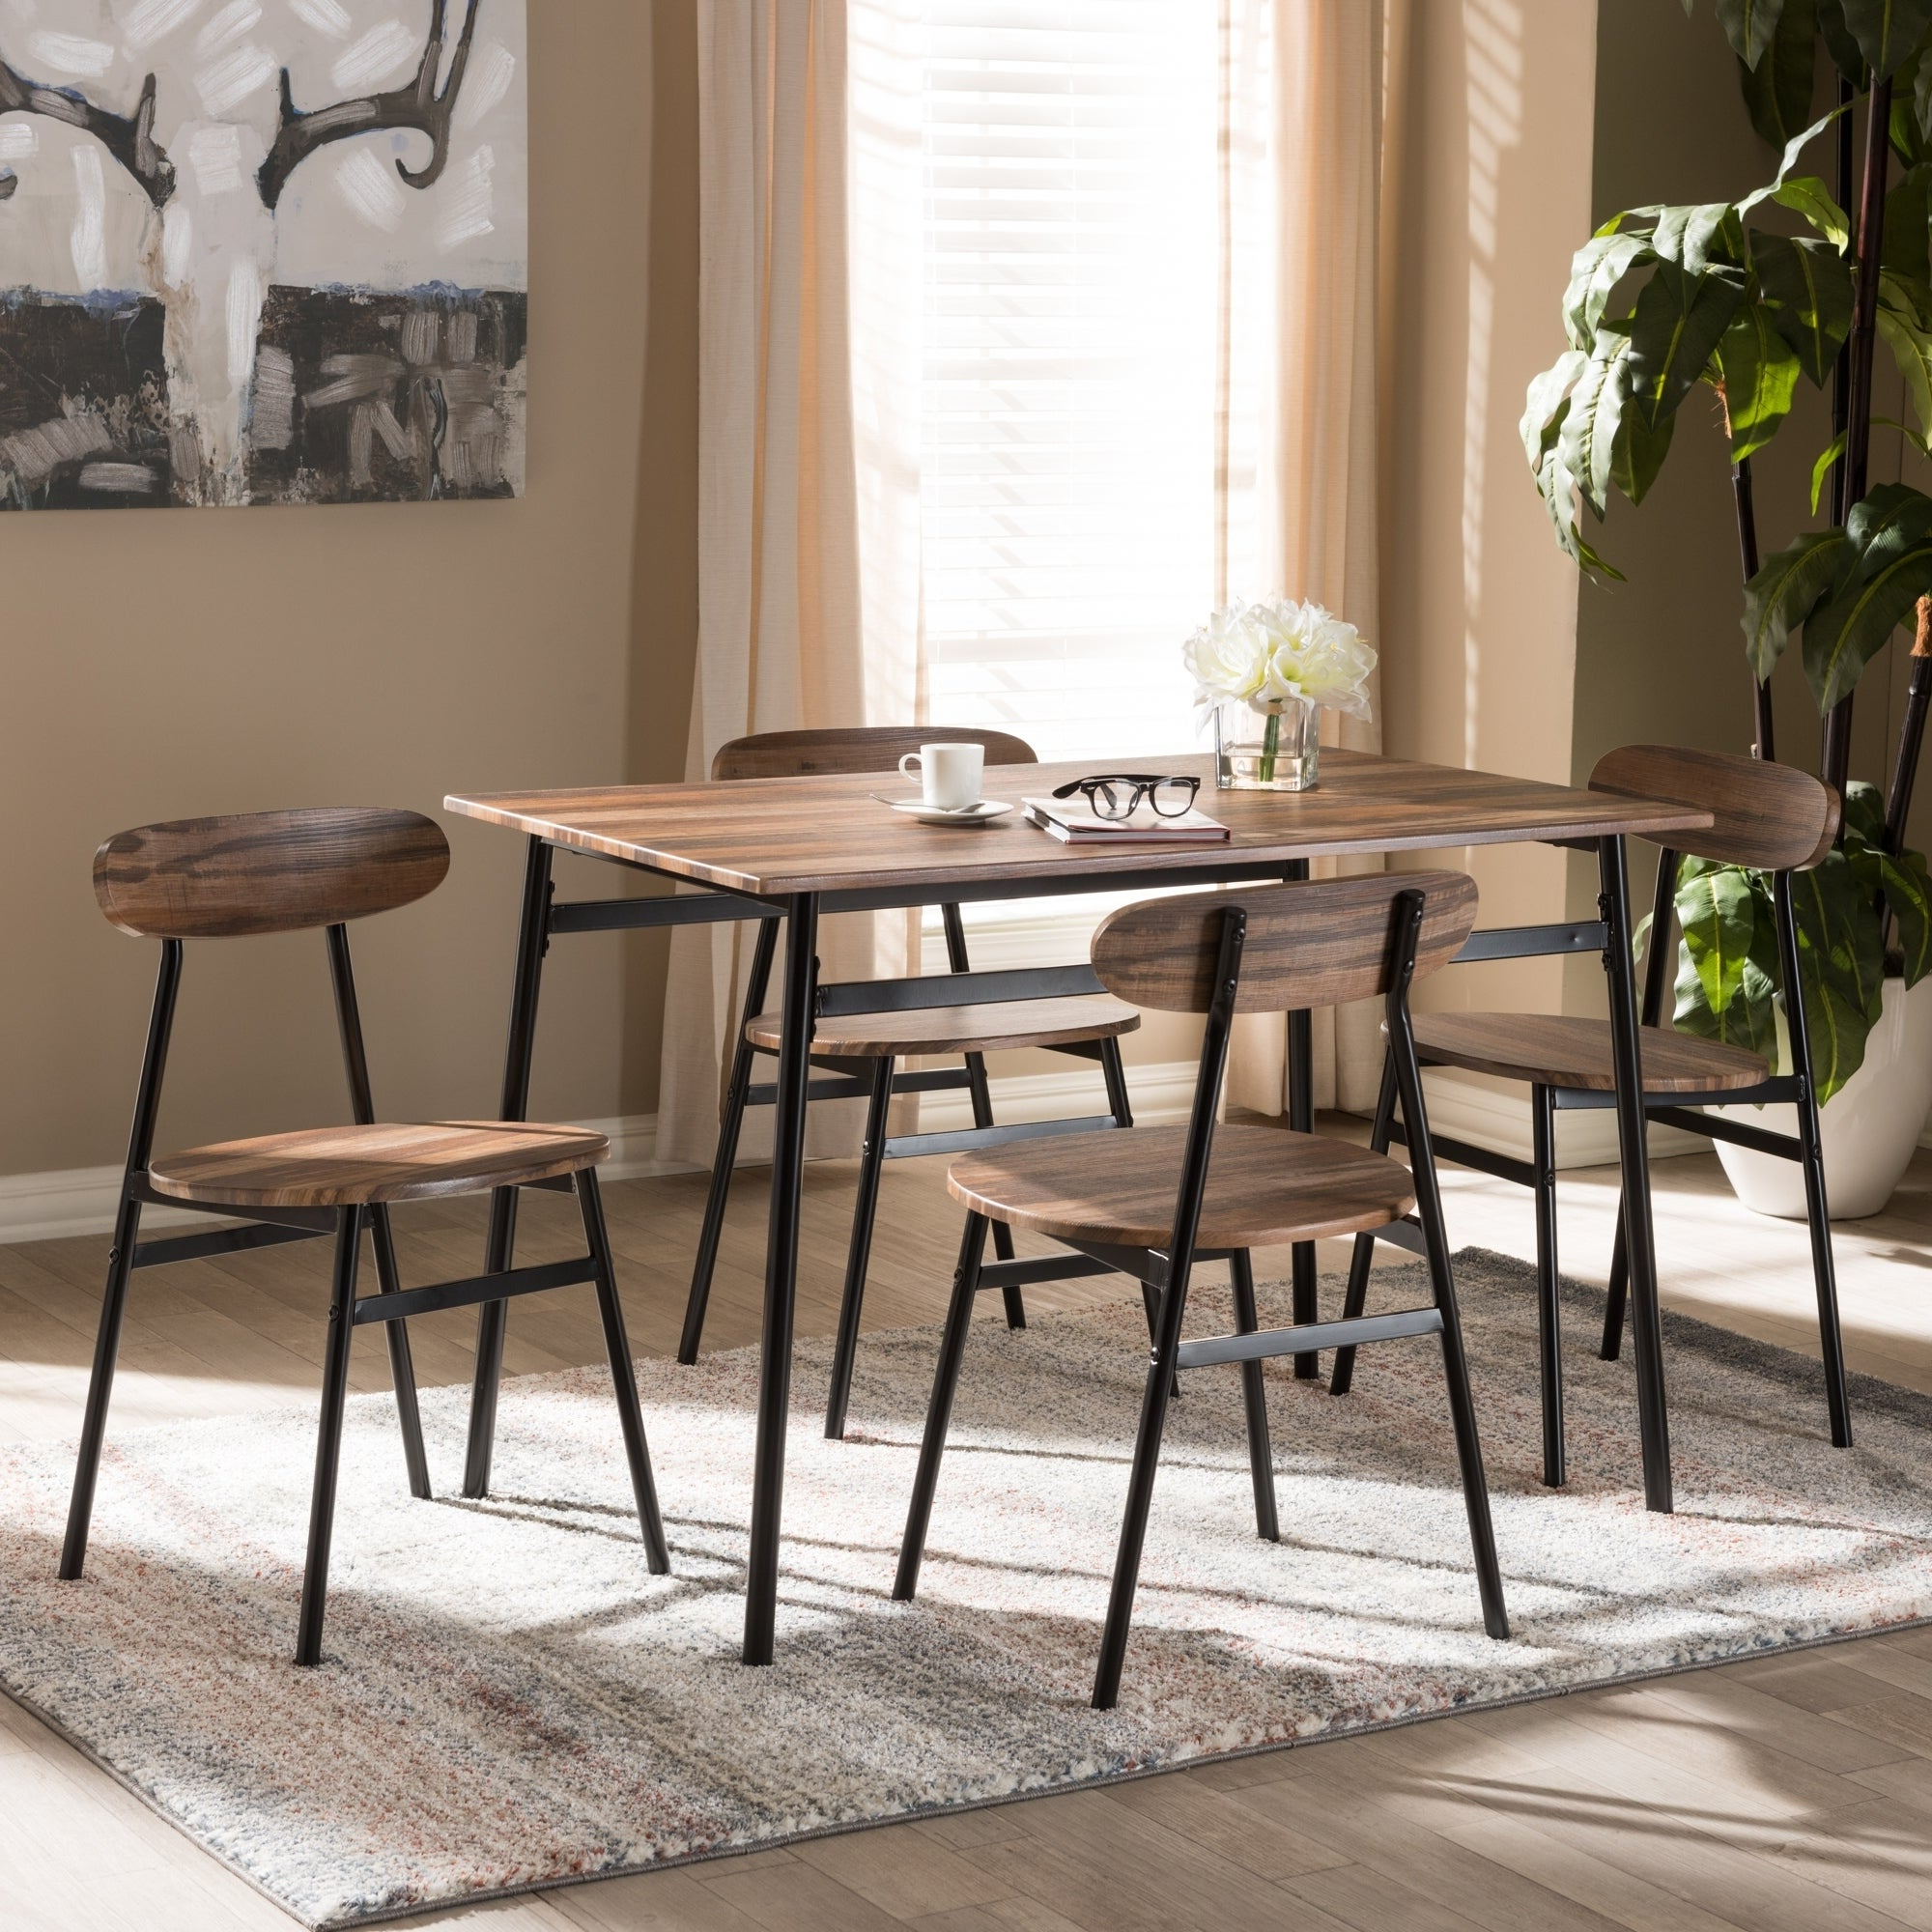 West Hill Family Table 3 Piece Dining Sets Intended For Latest Buy 5 Piece Sets Kitchen & Dining Room Sets Online At Overstock (View 14 of 20)